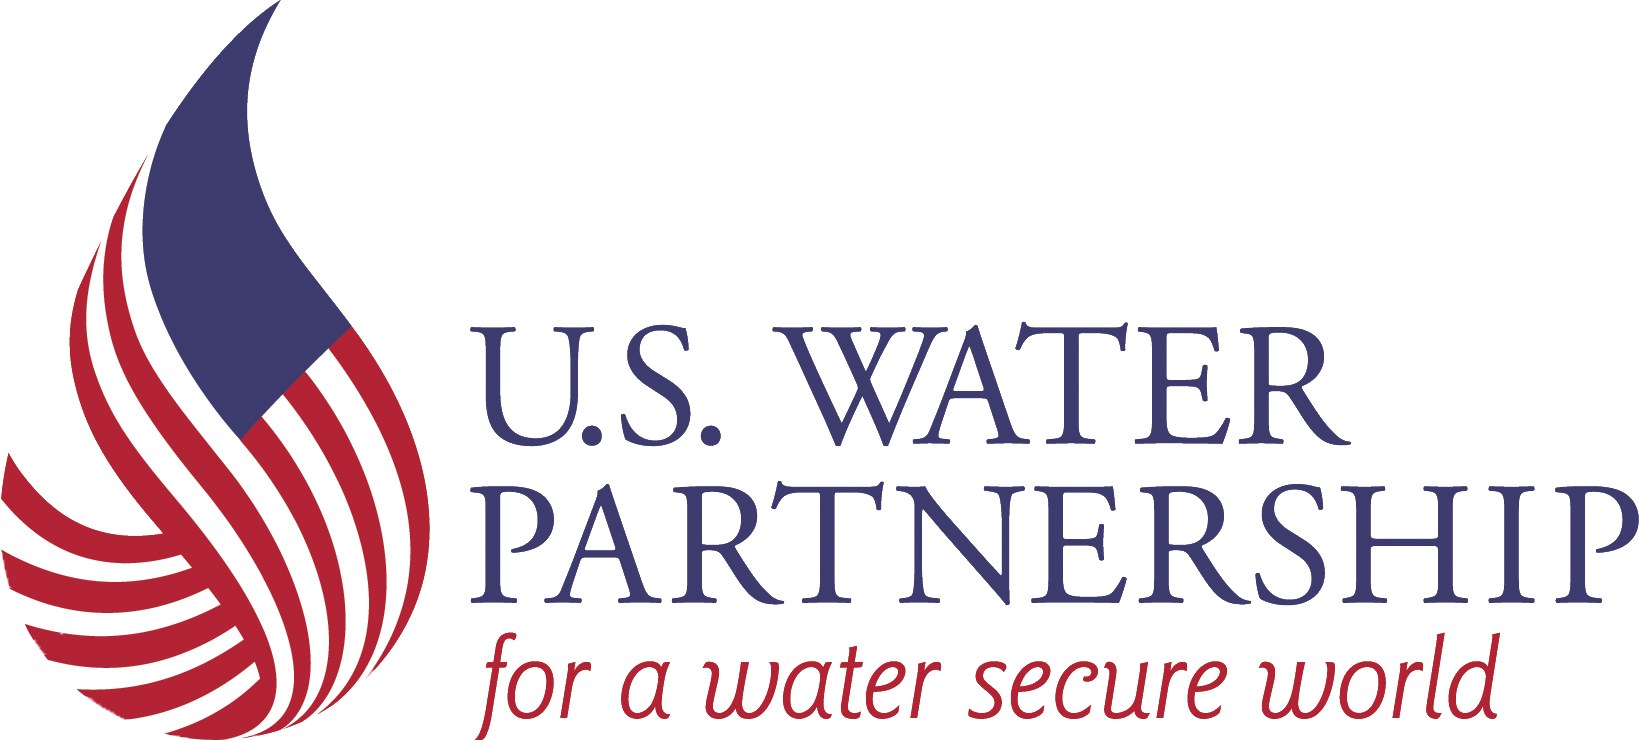 US_Water_Partnership